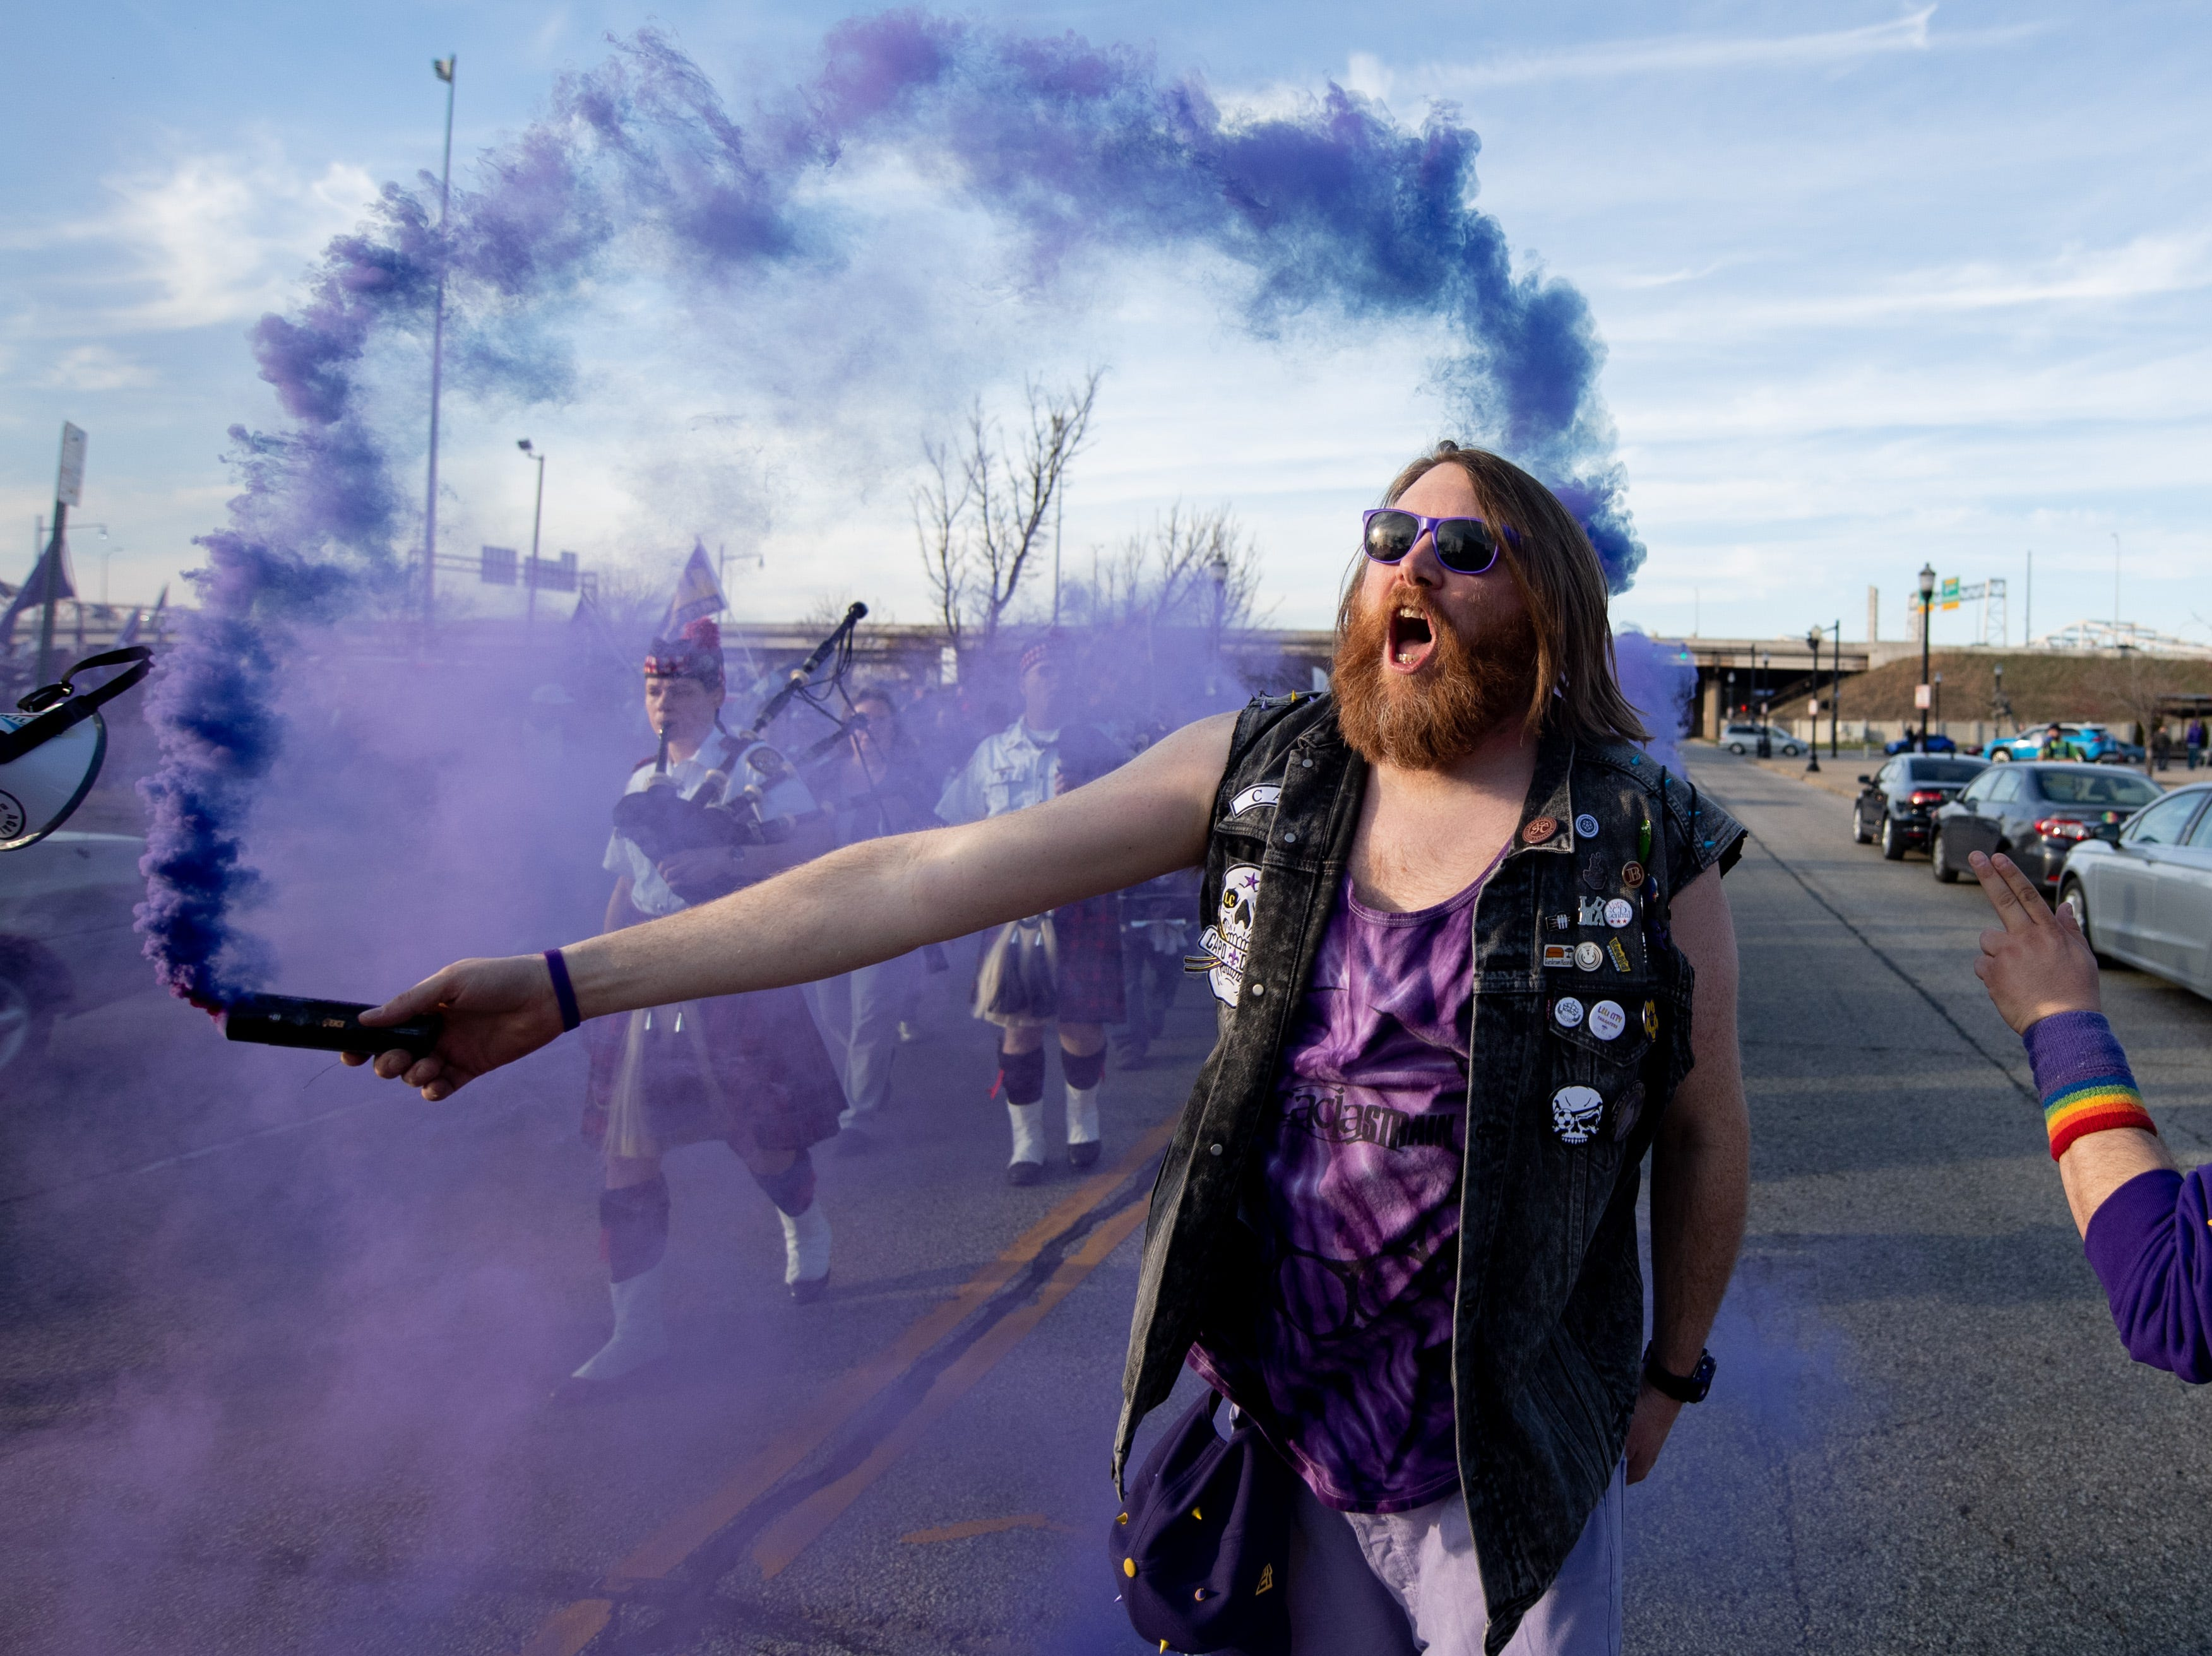 Louisville City FC fans Glenn McGlenn leads fans up Preston street on their way to the match in Louisville, Ky., Saturday, March 23, 2019.